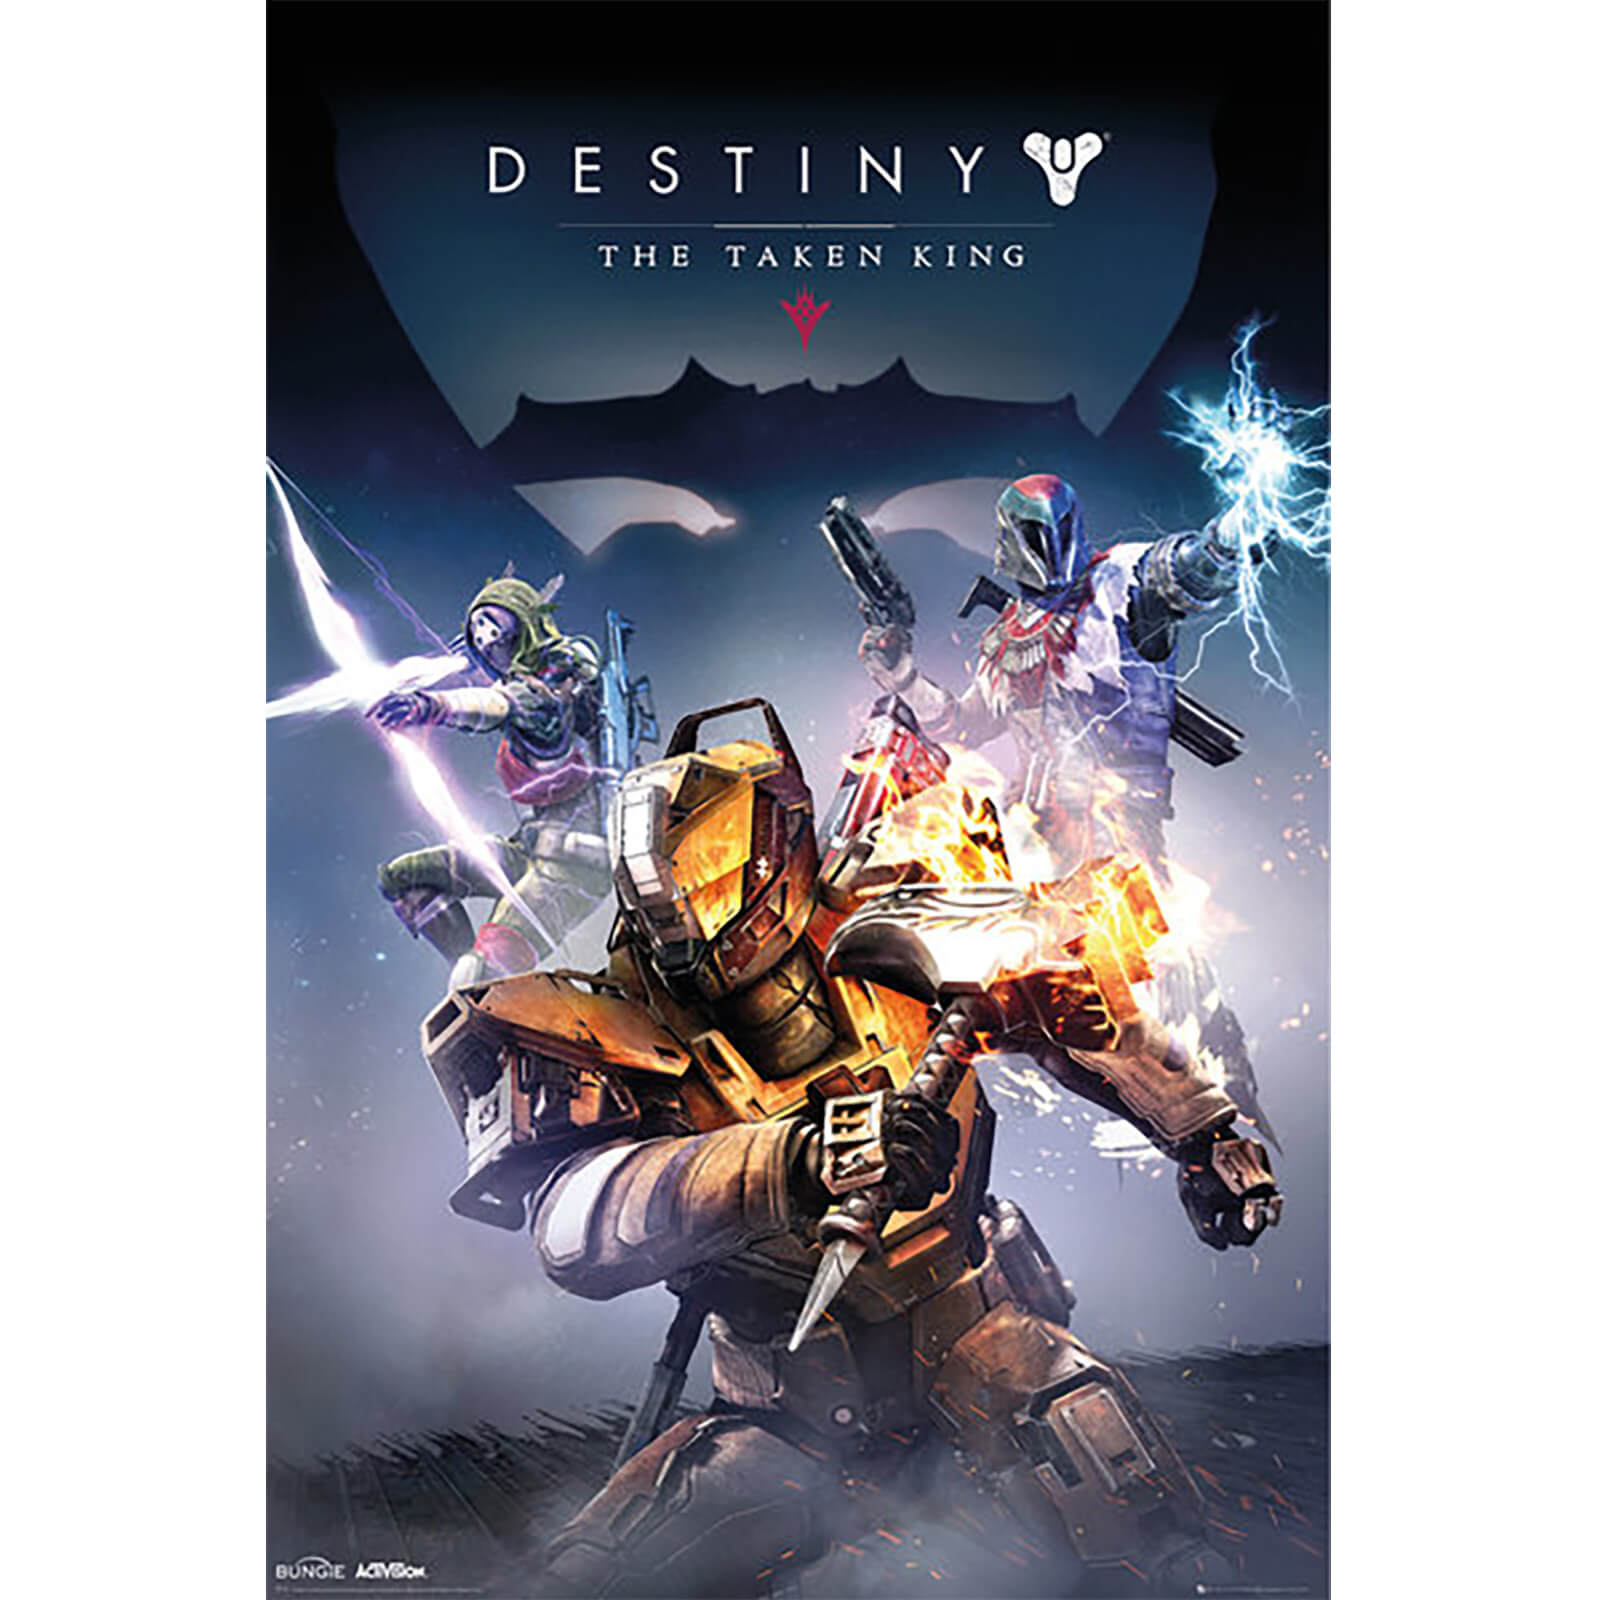 Destiny Taken King - 61 x 91.5cm Maxi Poster